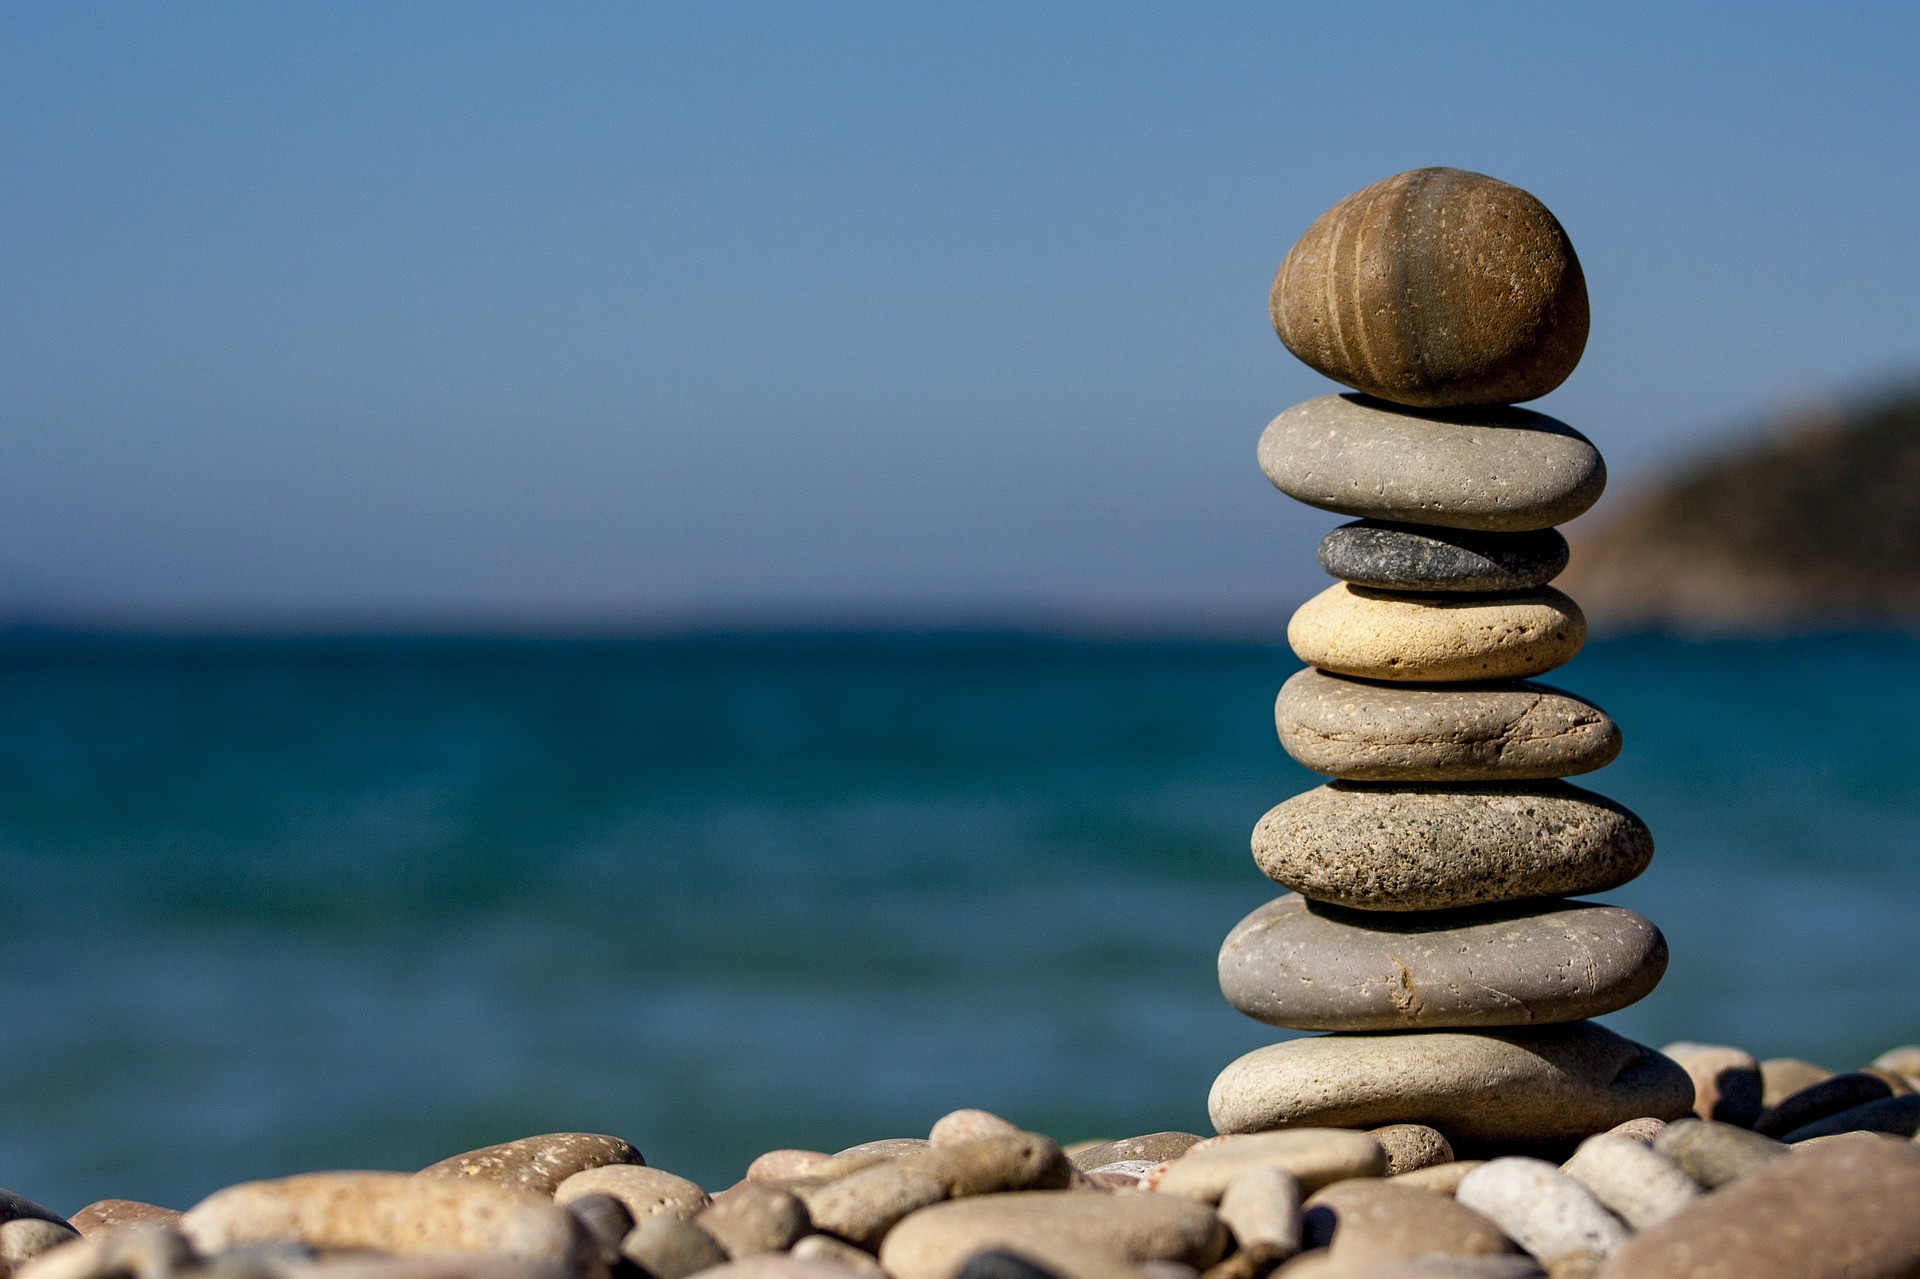 A balanced pile of stones on a beach